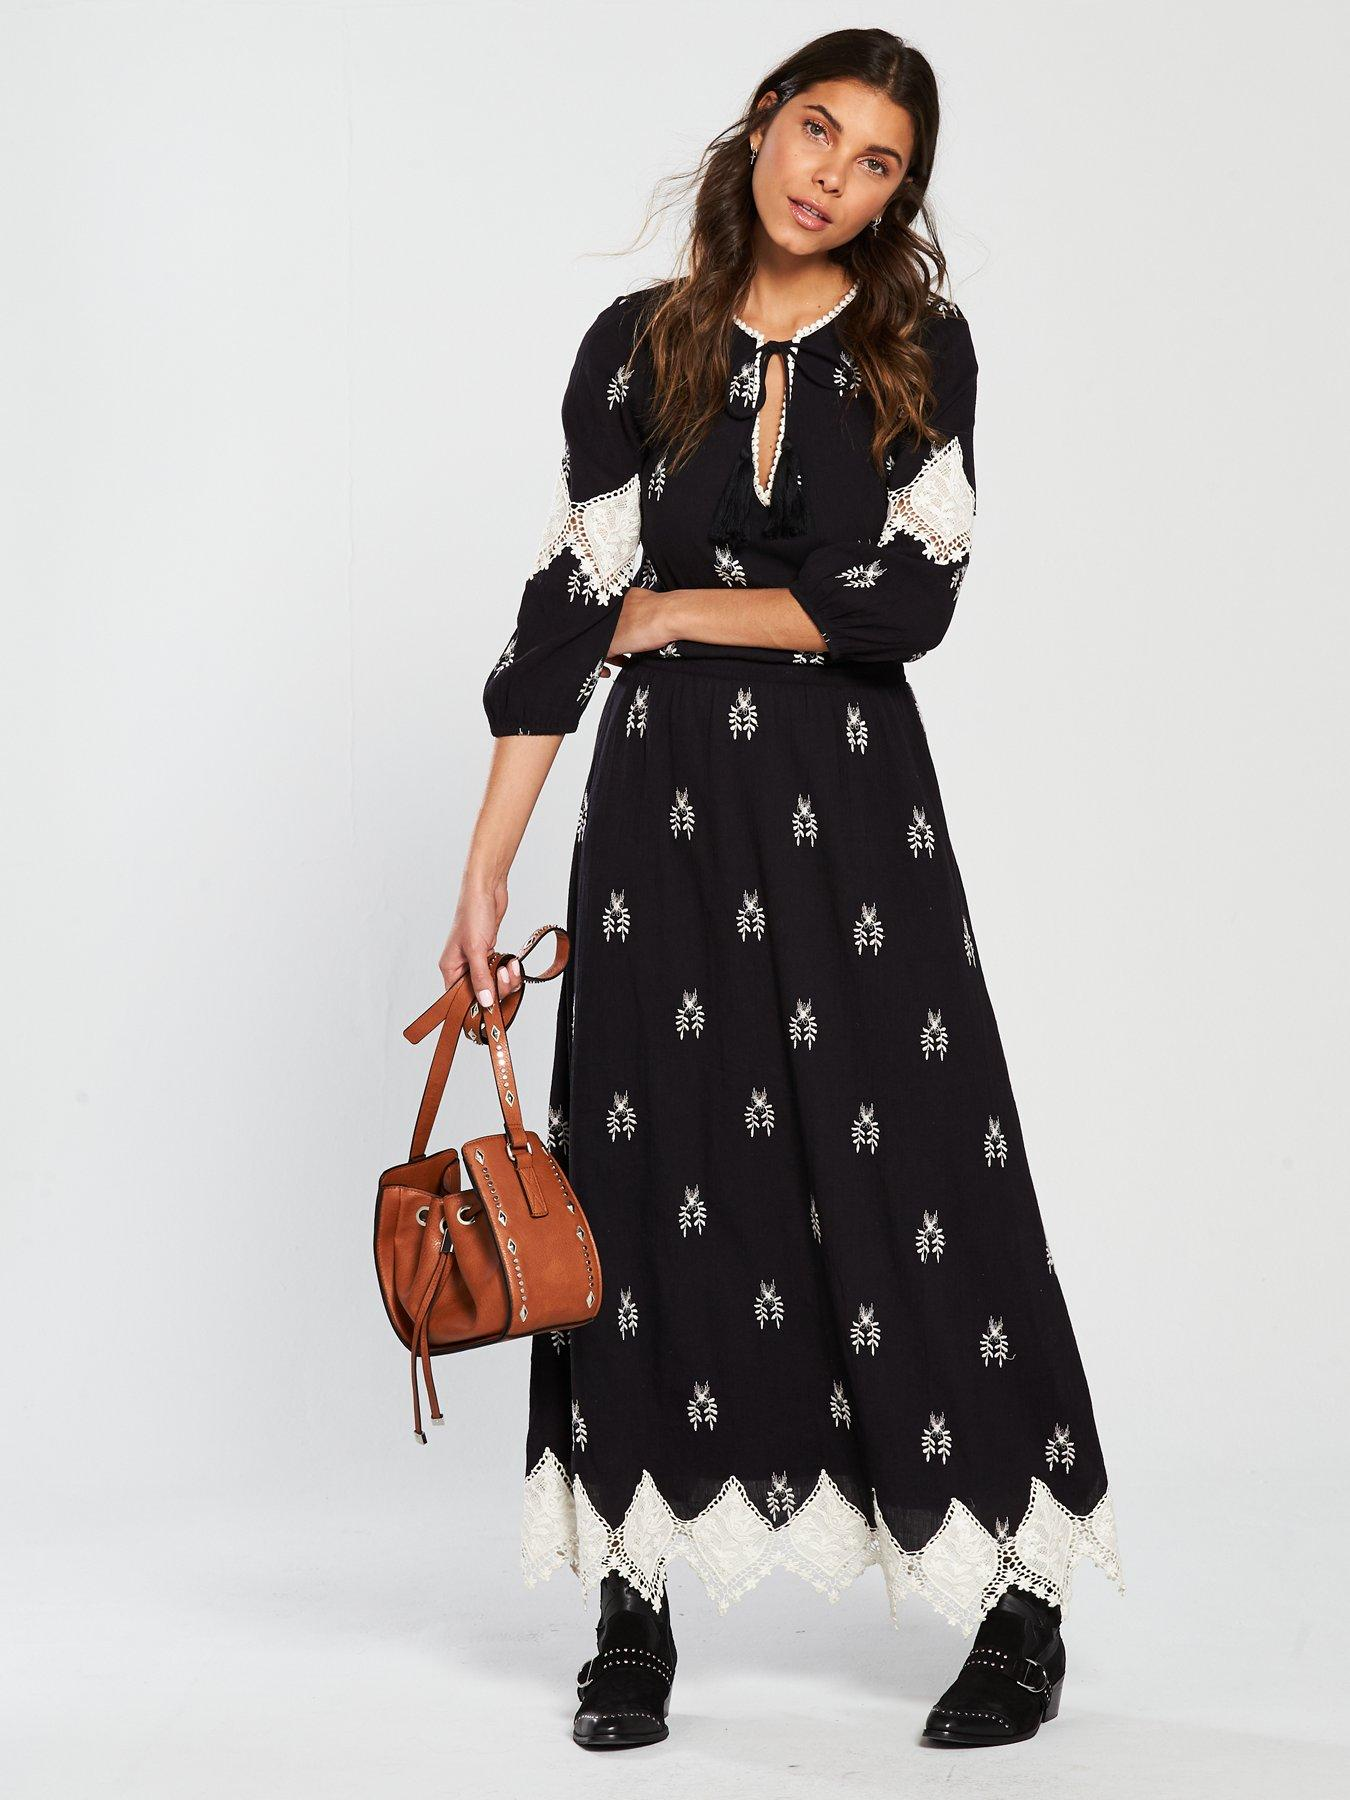 Long maxi dresses uk cheap